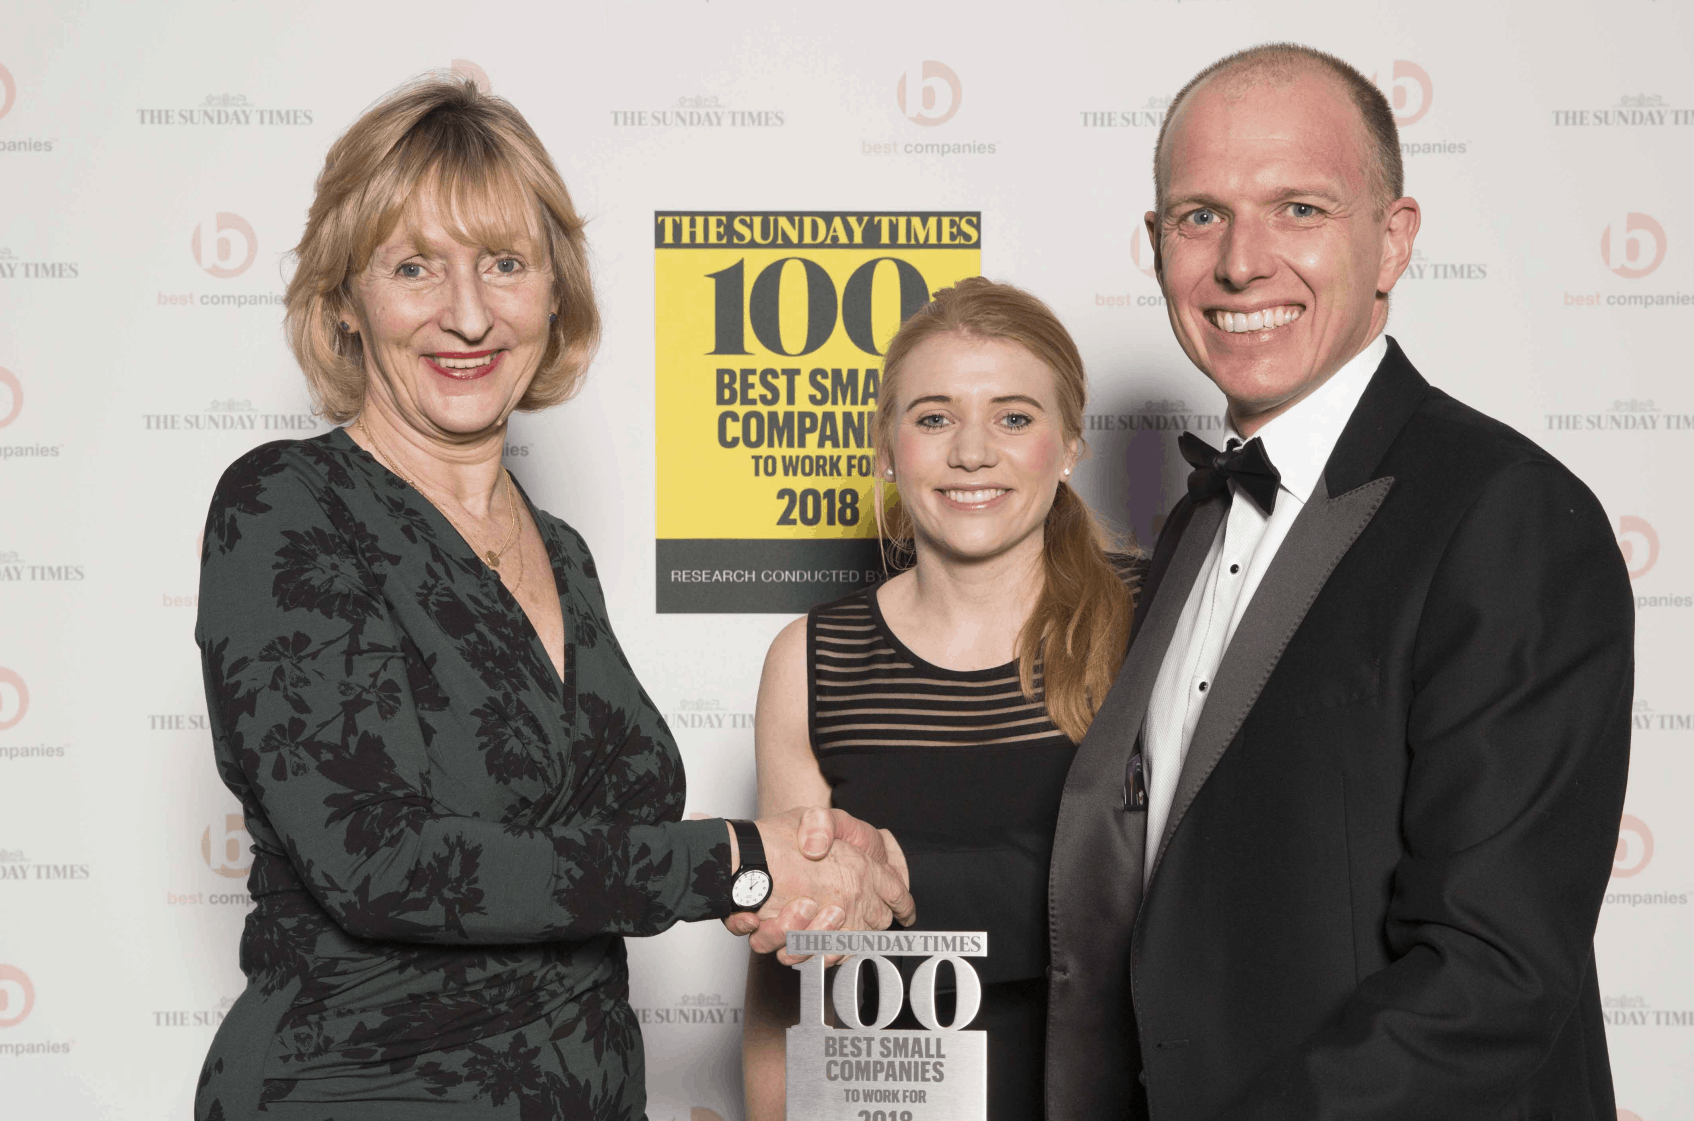 sunday times top 100 small companies to work for 2018